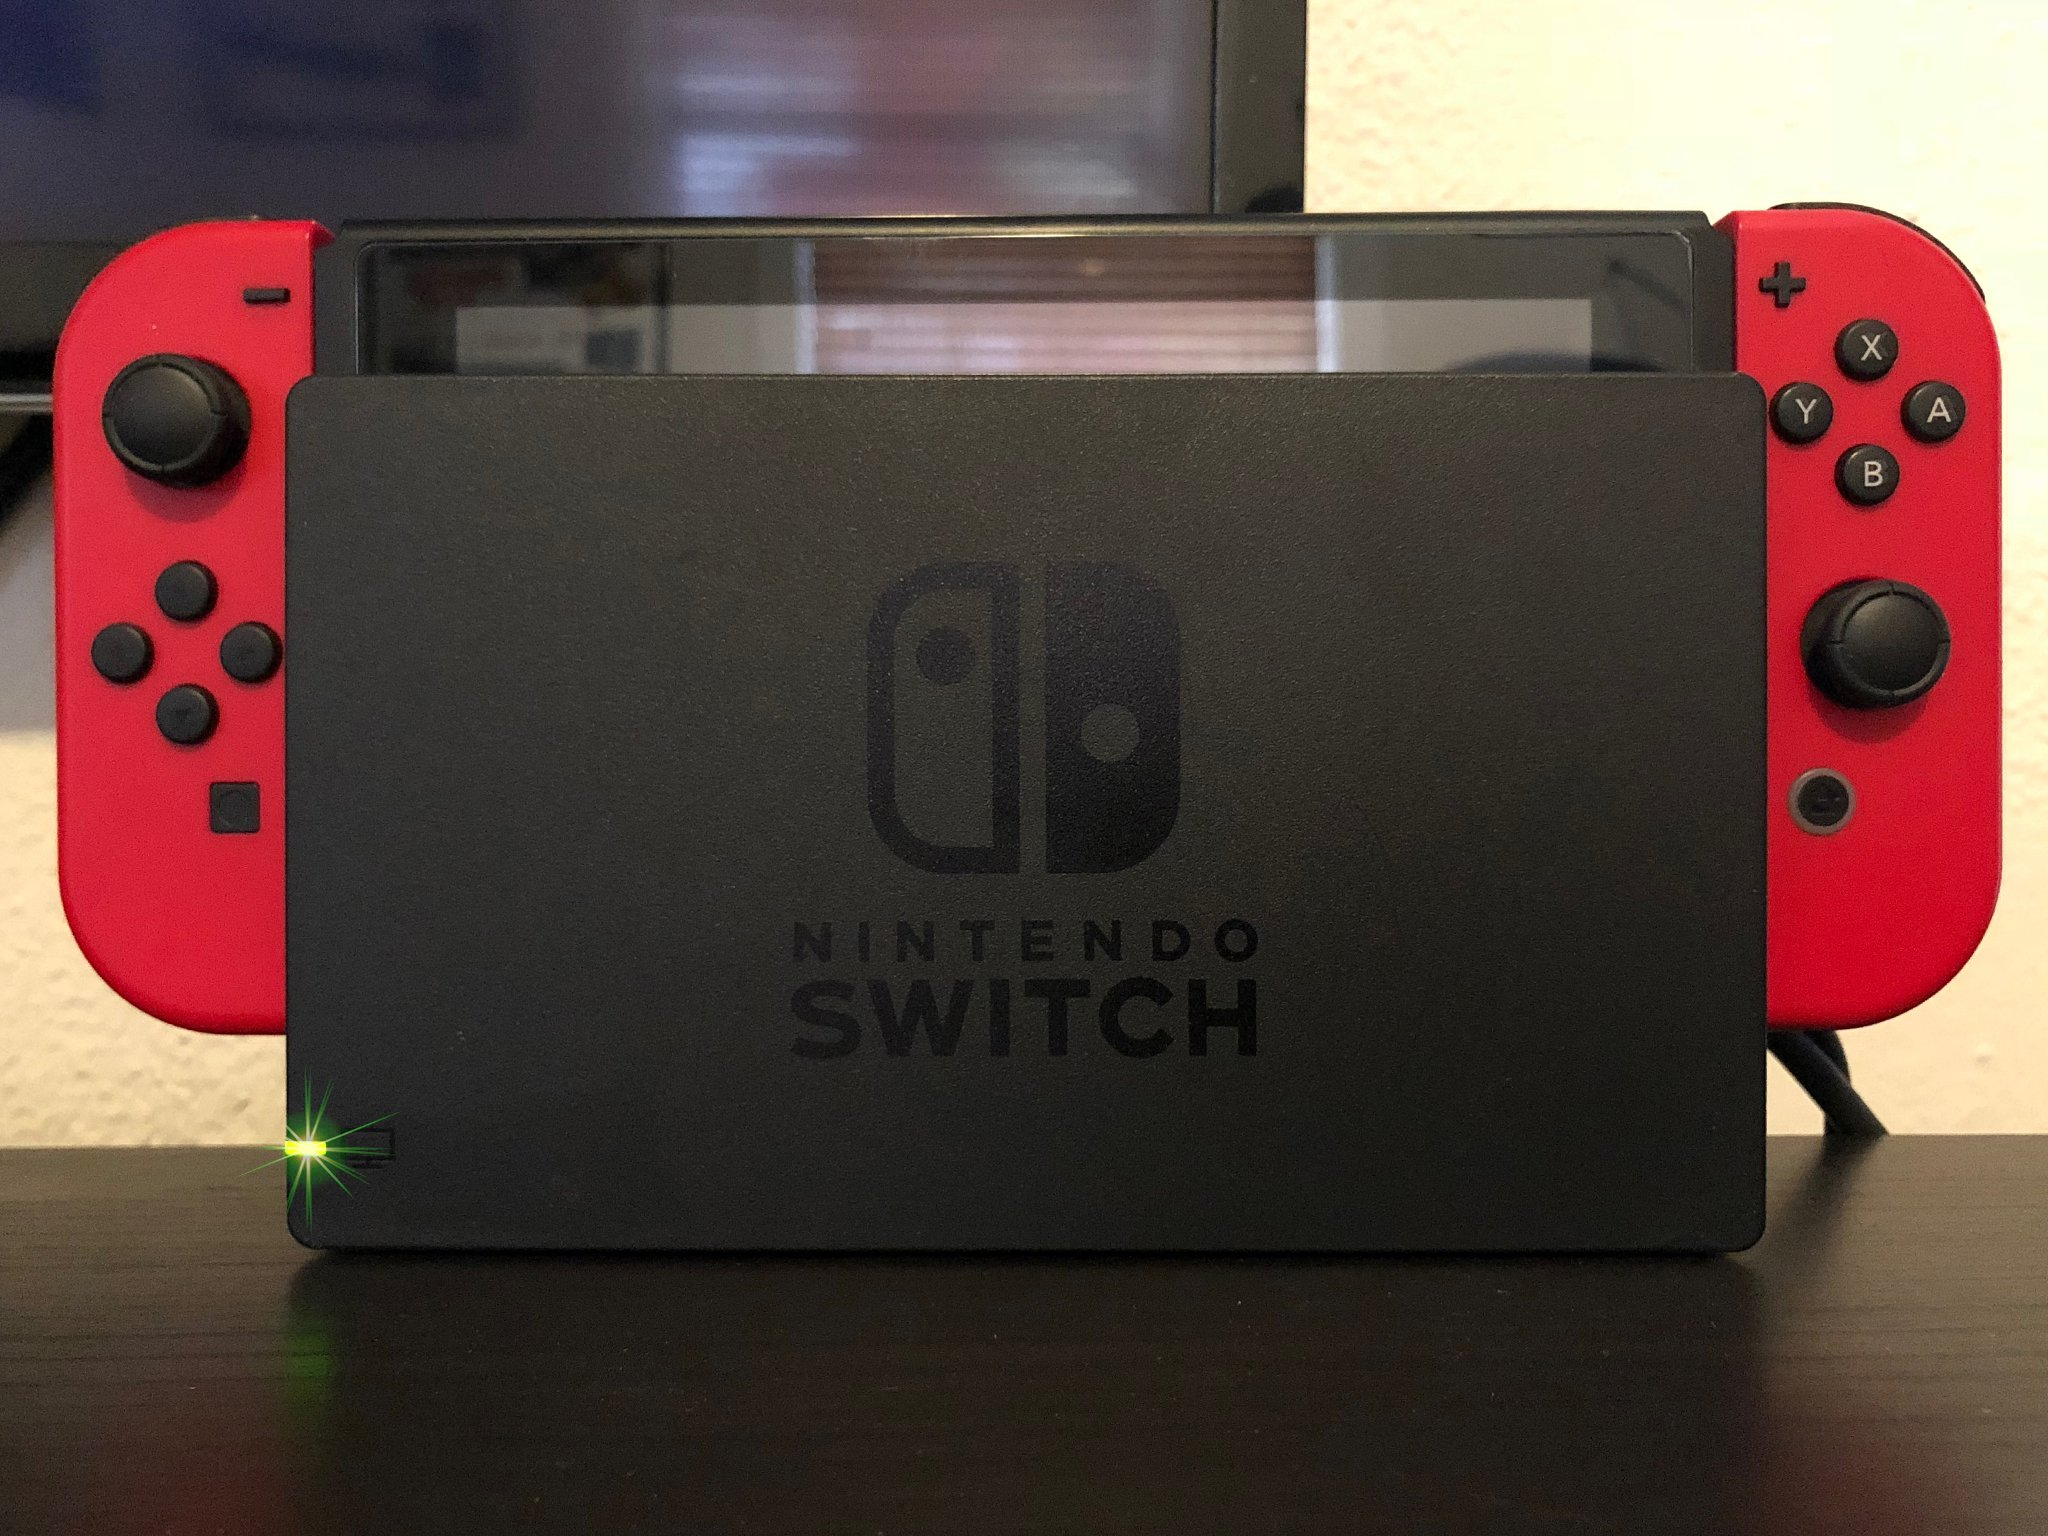 Switch Light How To Fix Blinking Green Light On Your Nintendo Switch Dock Imore